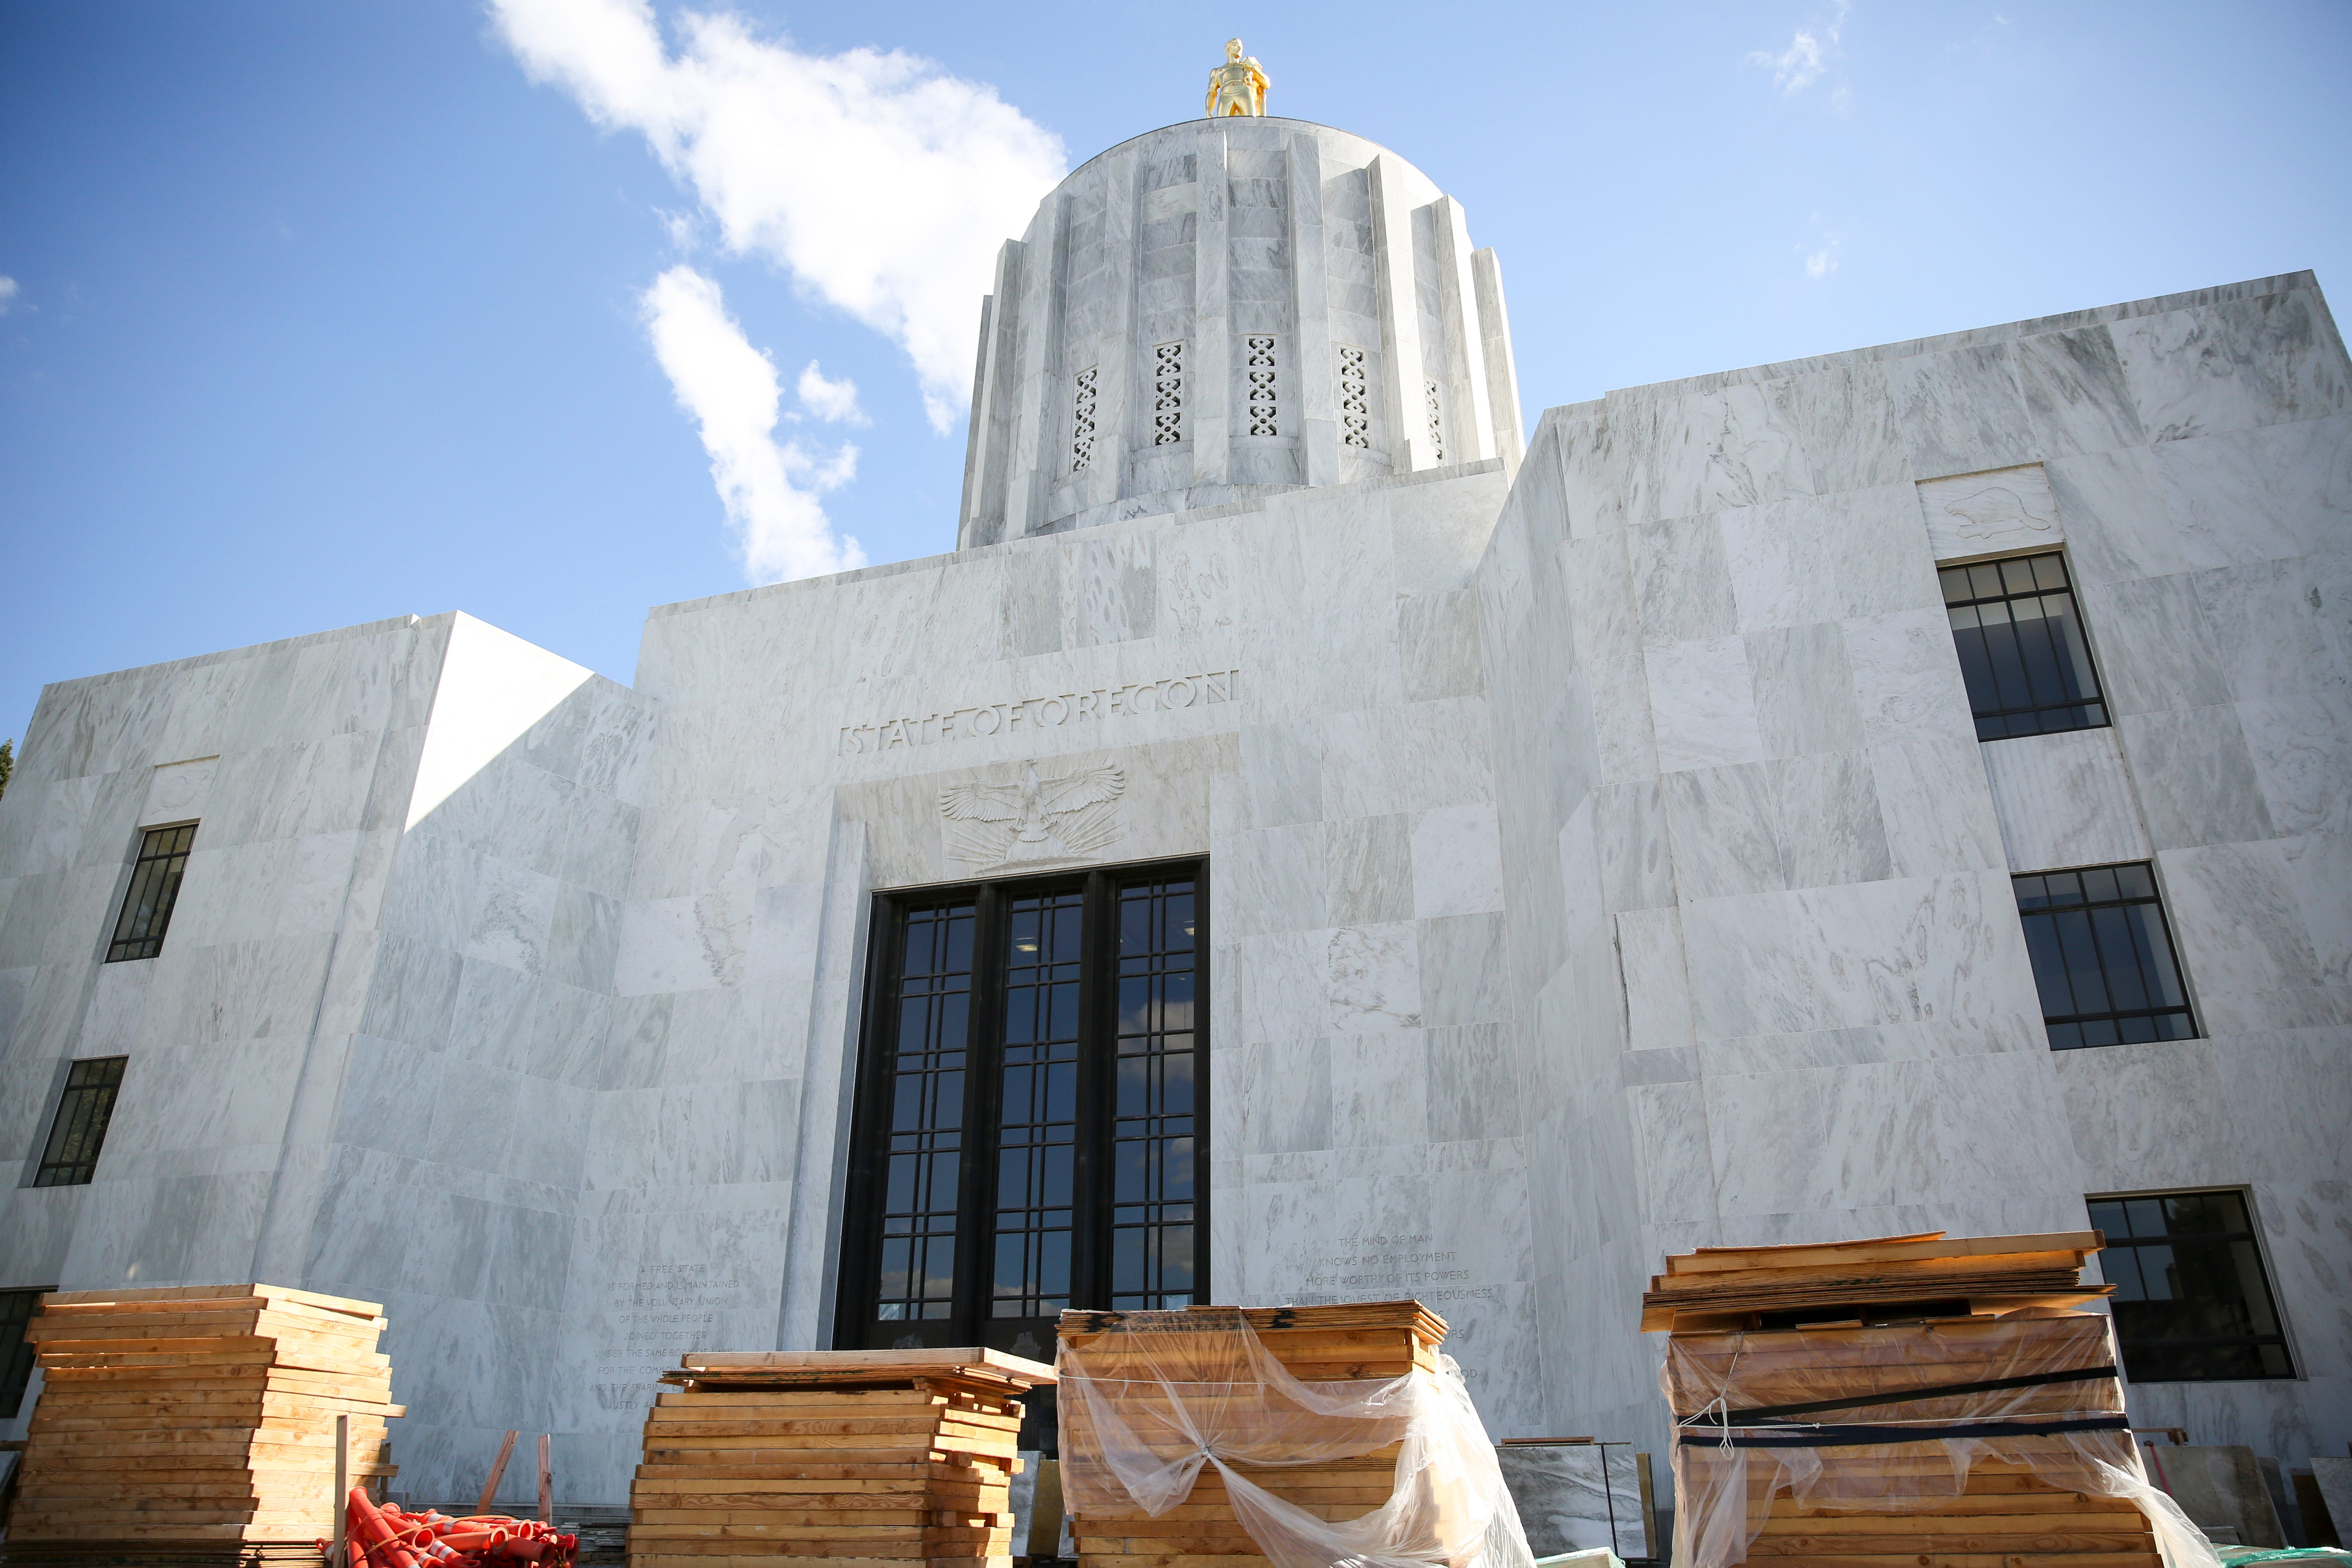 $71M Oregon Capitol construction project focuses on accessibility, earthquake safety